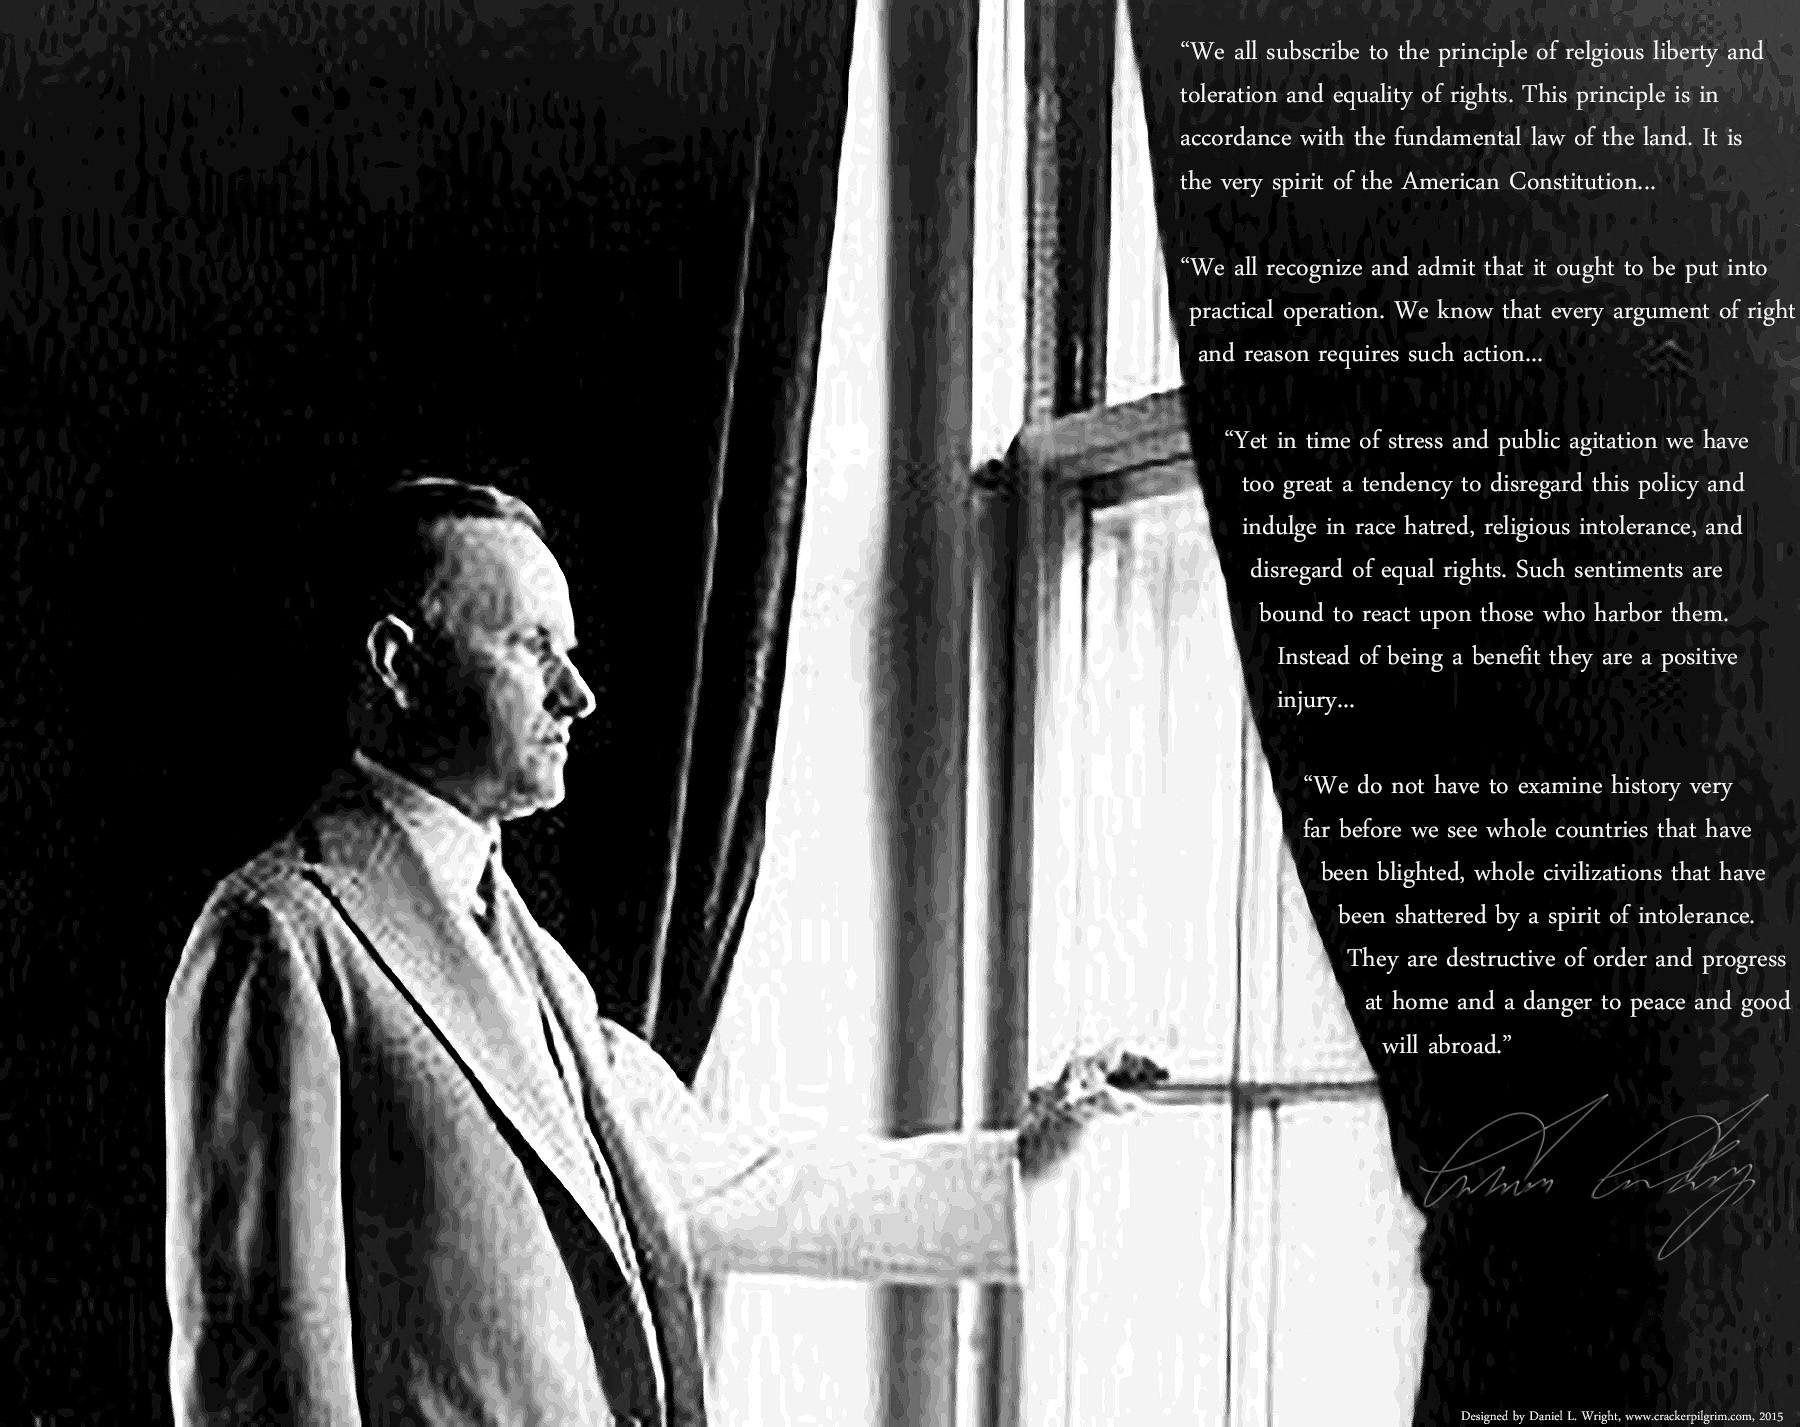 Calvin-Coolidge-full-length-portrait-standing-at-window-facing...-painting-artwork-print - Copy